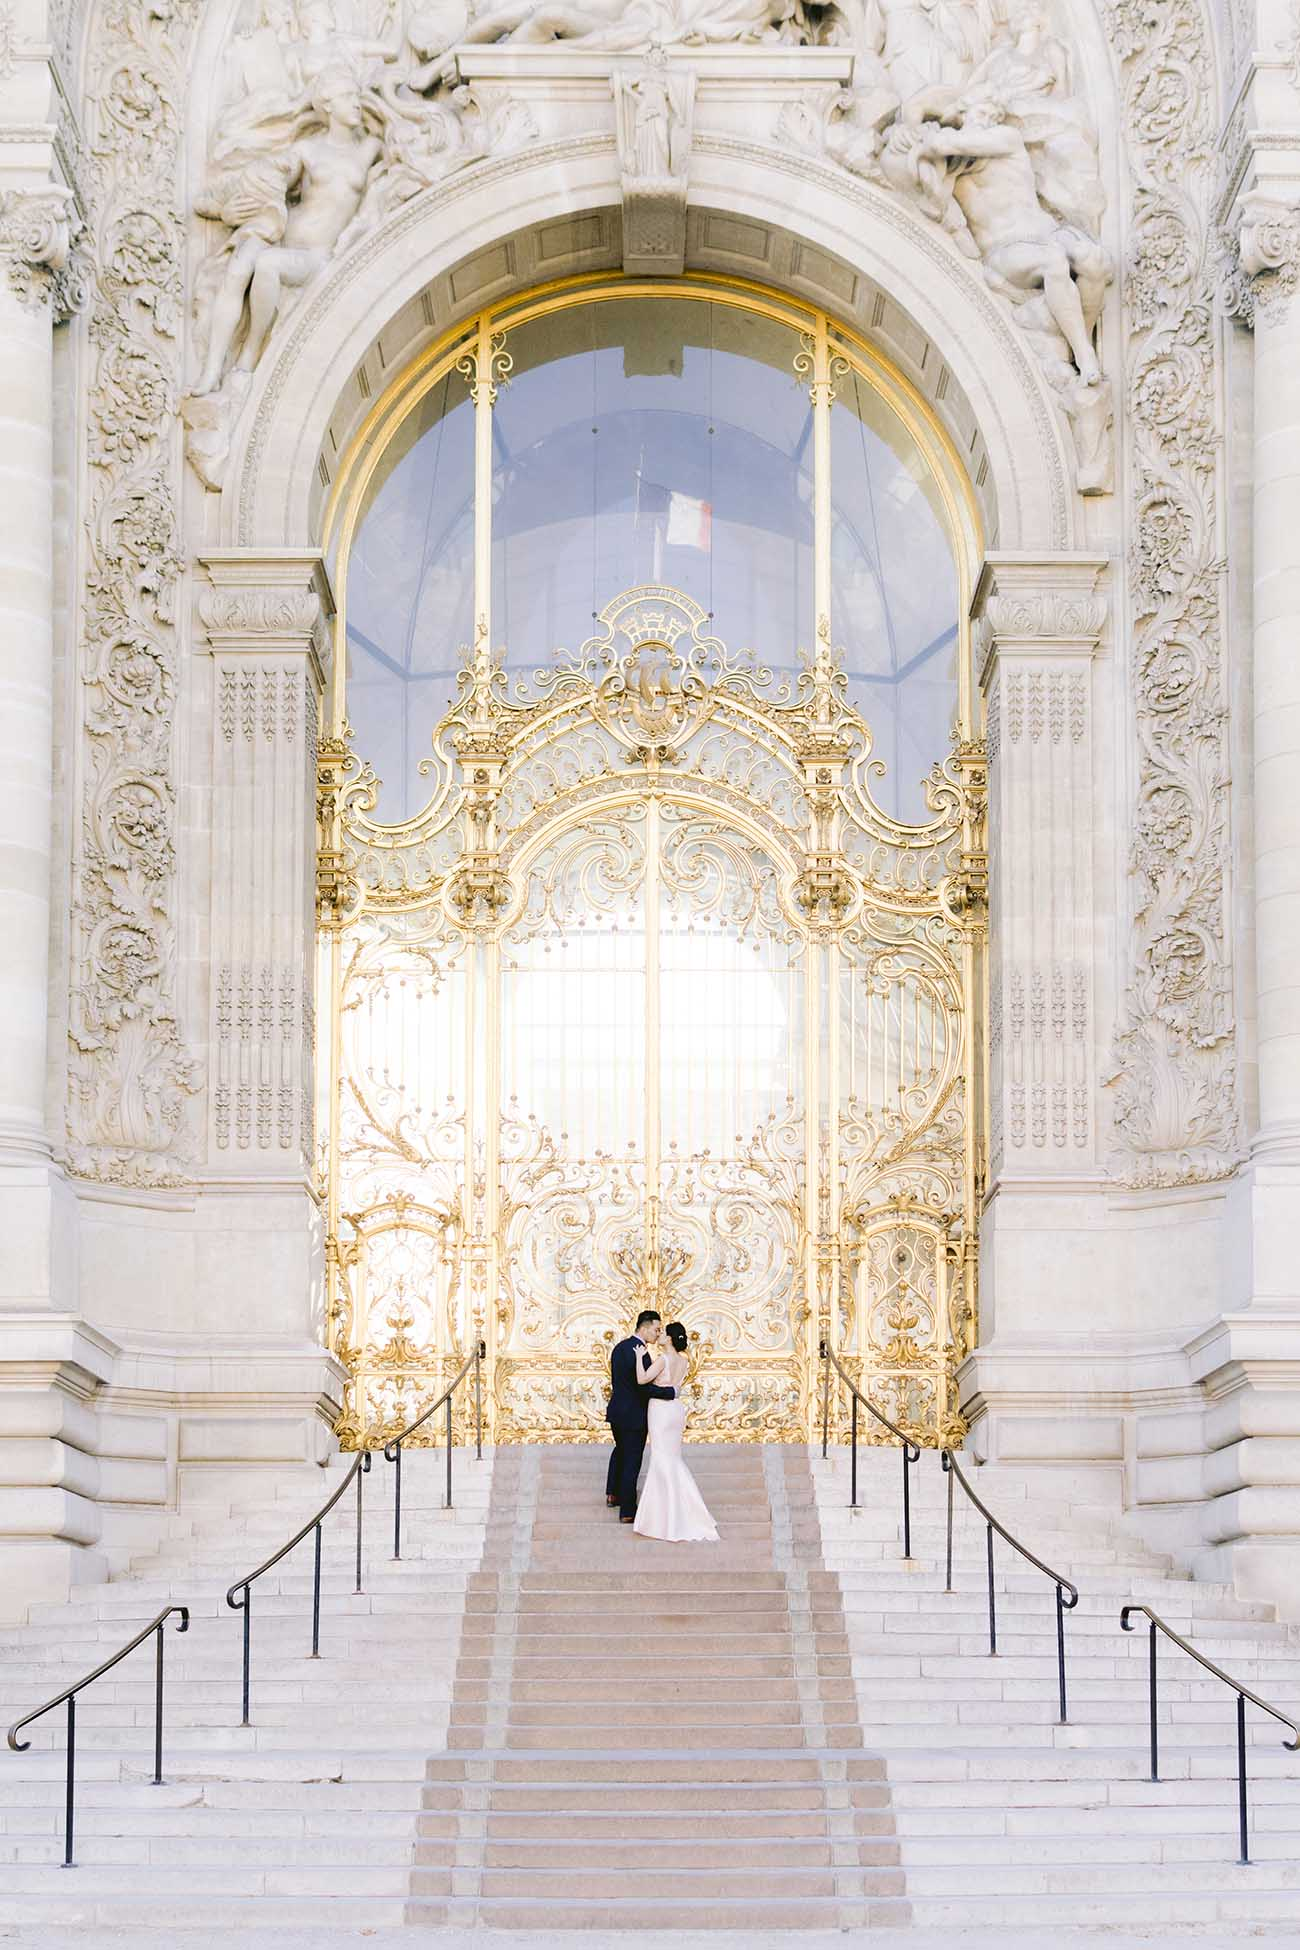 A couple embraces in front of the magnificent golden door of the Petit Palais in Paris